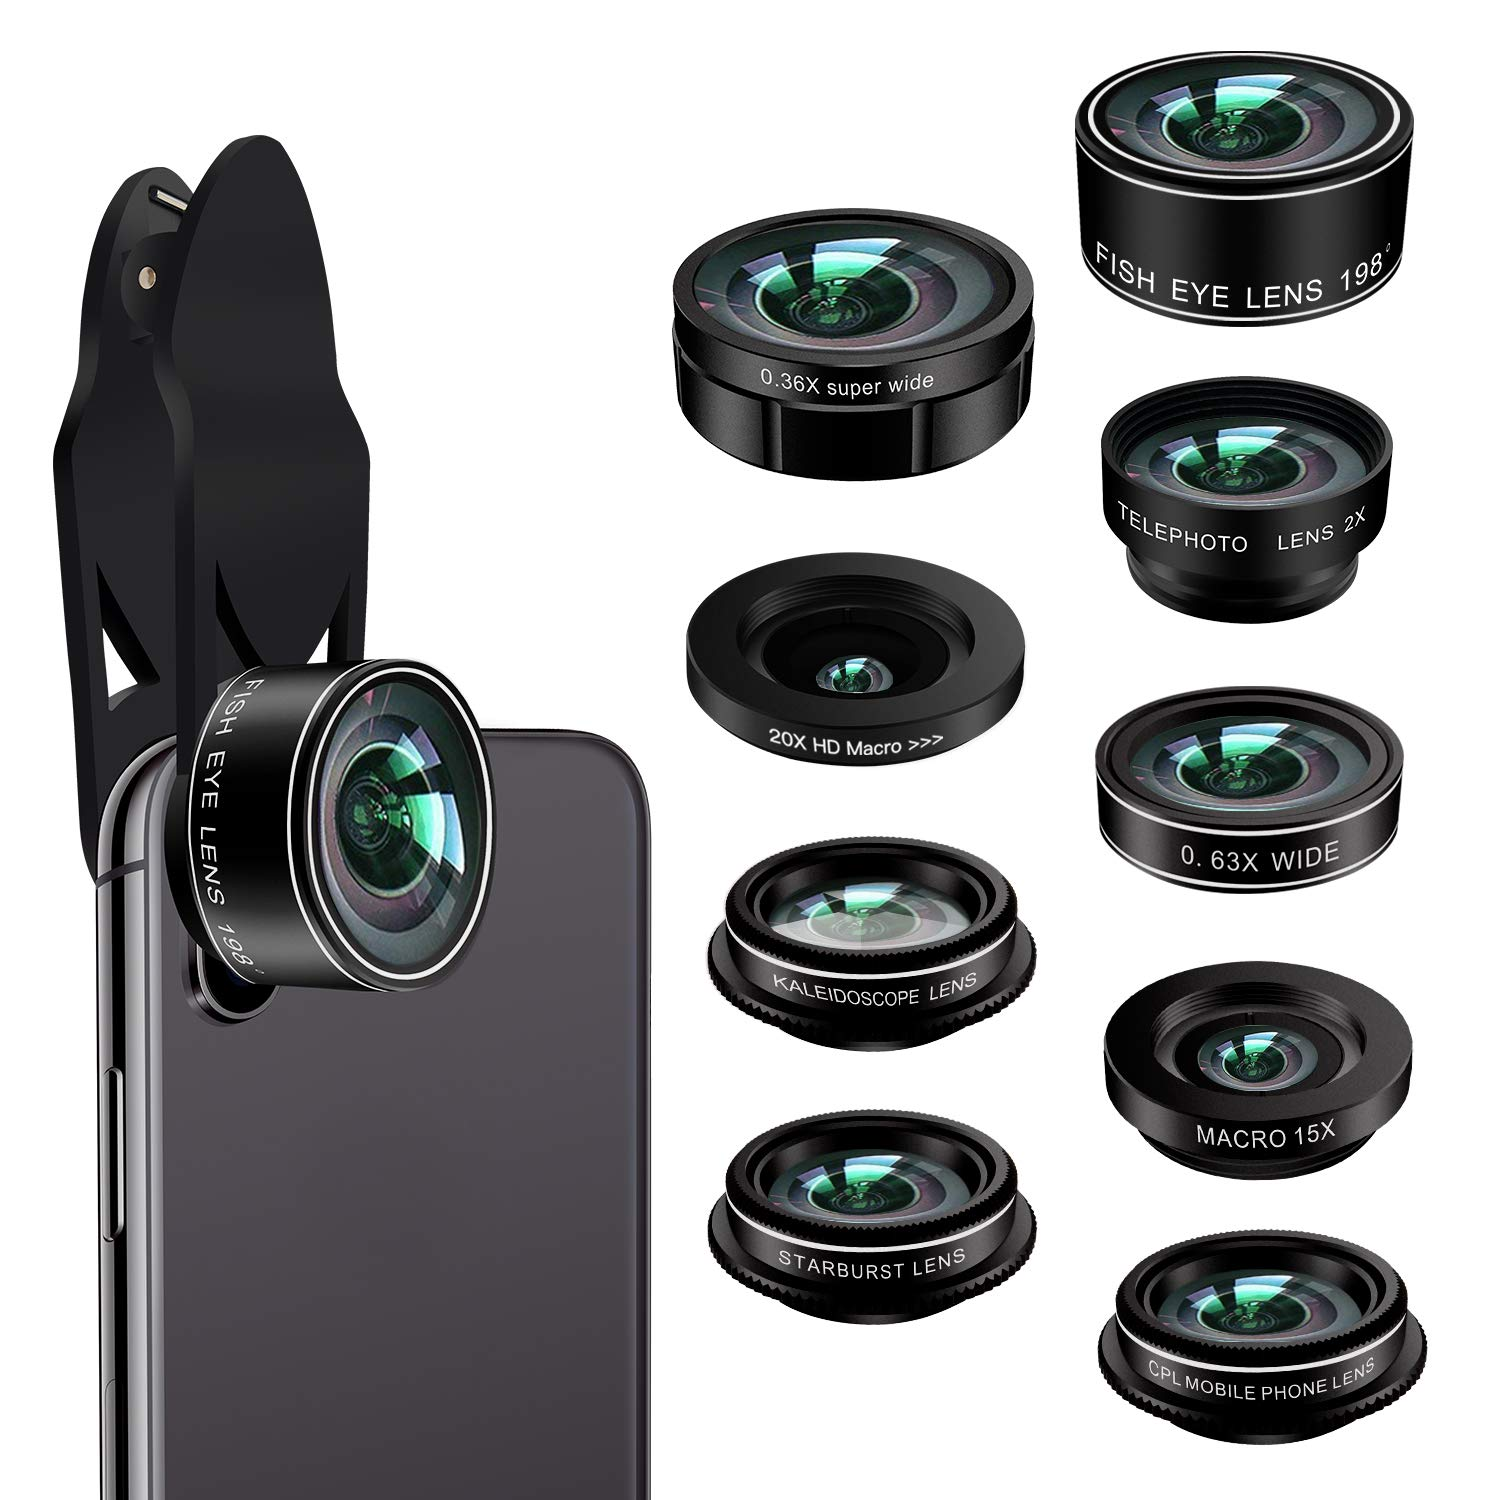 Phone Camera Lens Kit,9 in 1 Kaiess Super Wide Angle+ Macro+ Fisheye Lens +Telephoto+ CPL+Kaleidoscope+Starburst Lens for iPhone X/8/7/6s/6 Plus, Samsung,Android Smartphones(Matte Black) by Kaiess (Image #1)